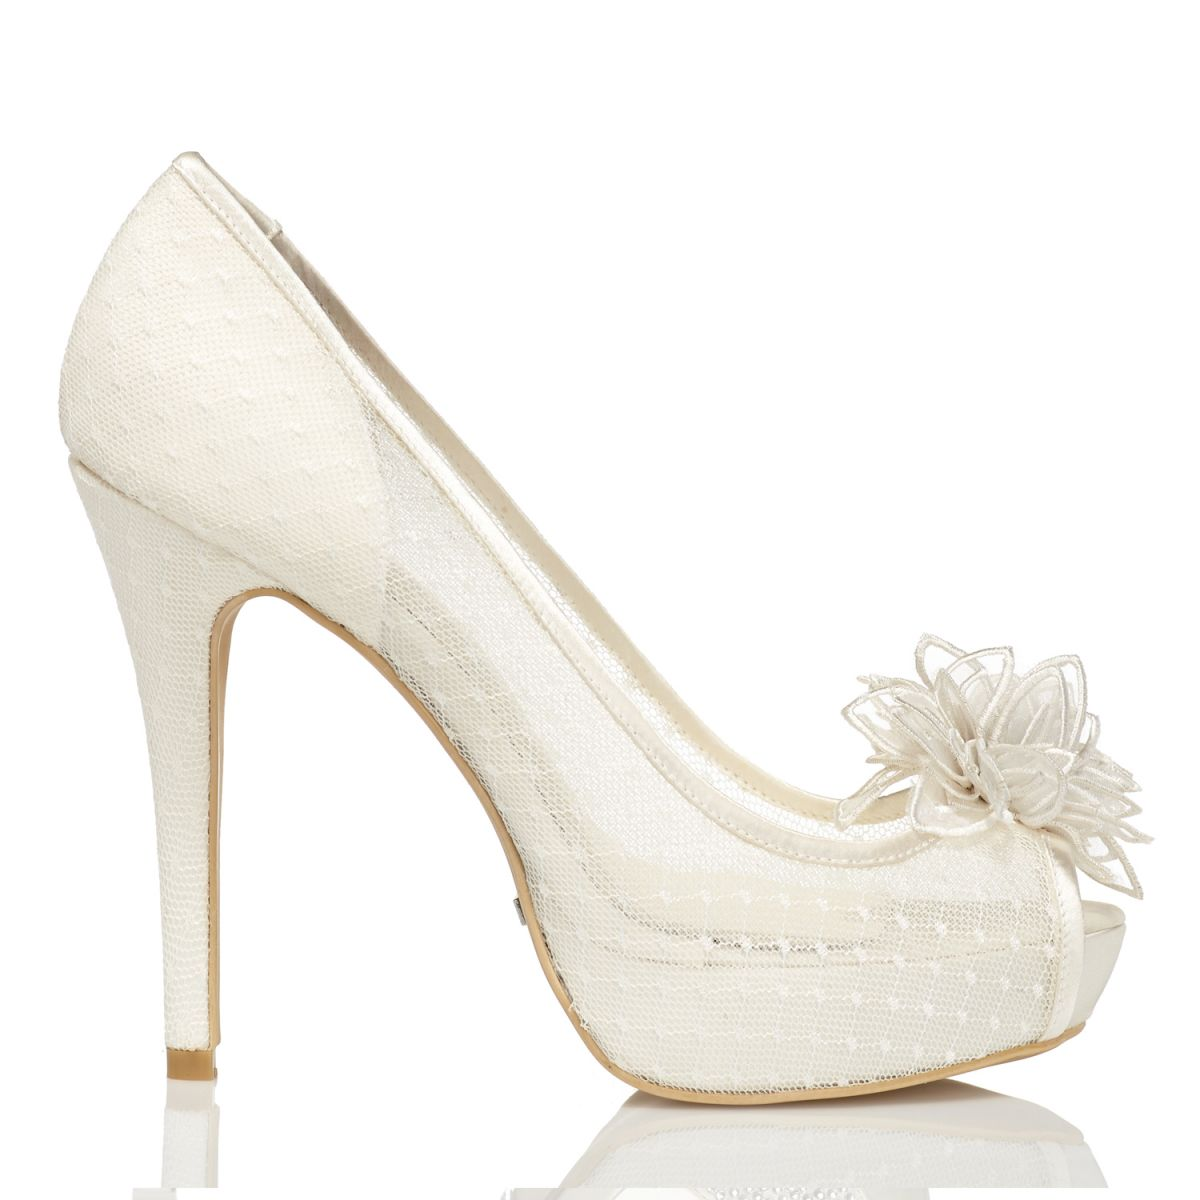 Bridal Shoes – Matching Bridal Shoes Menbur Shop OFFICIAL SITE